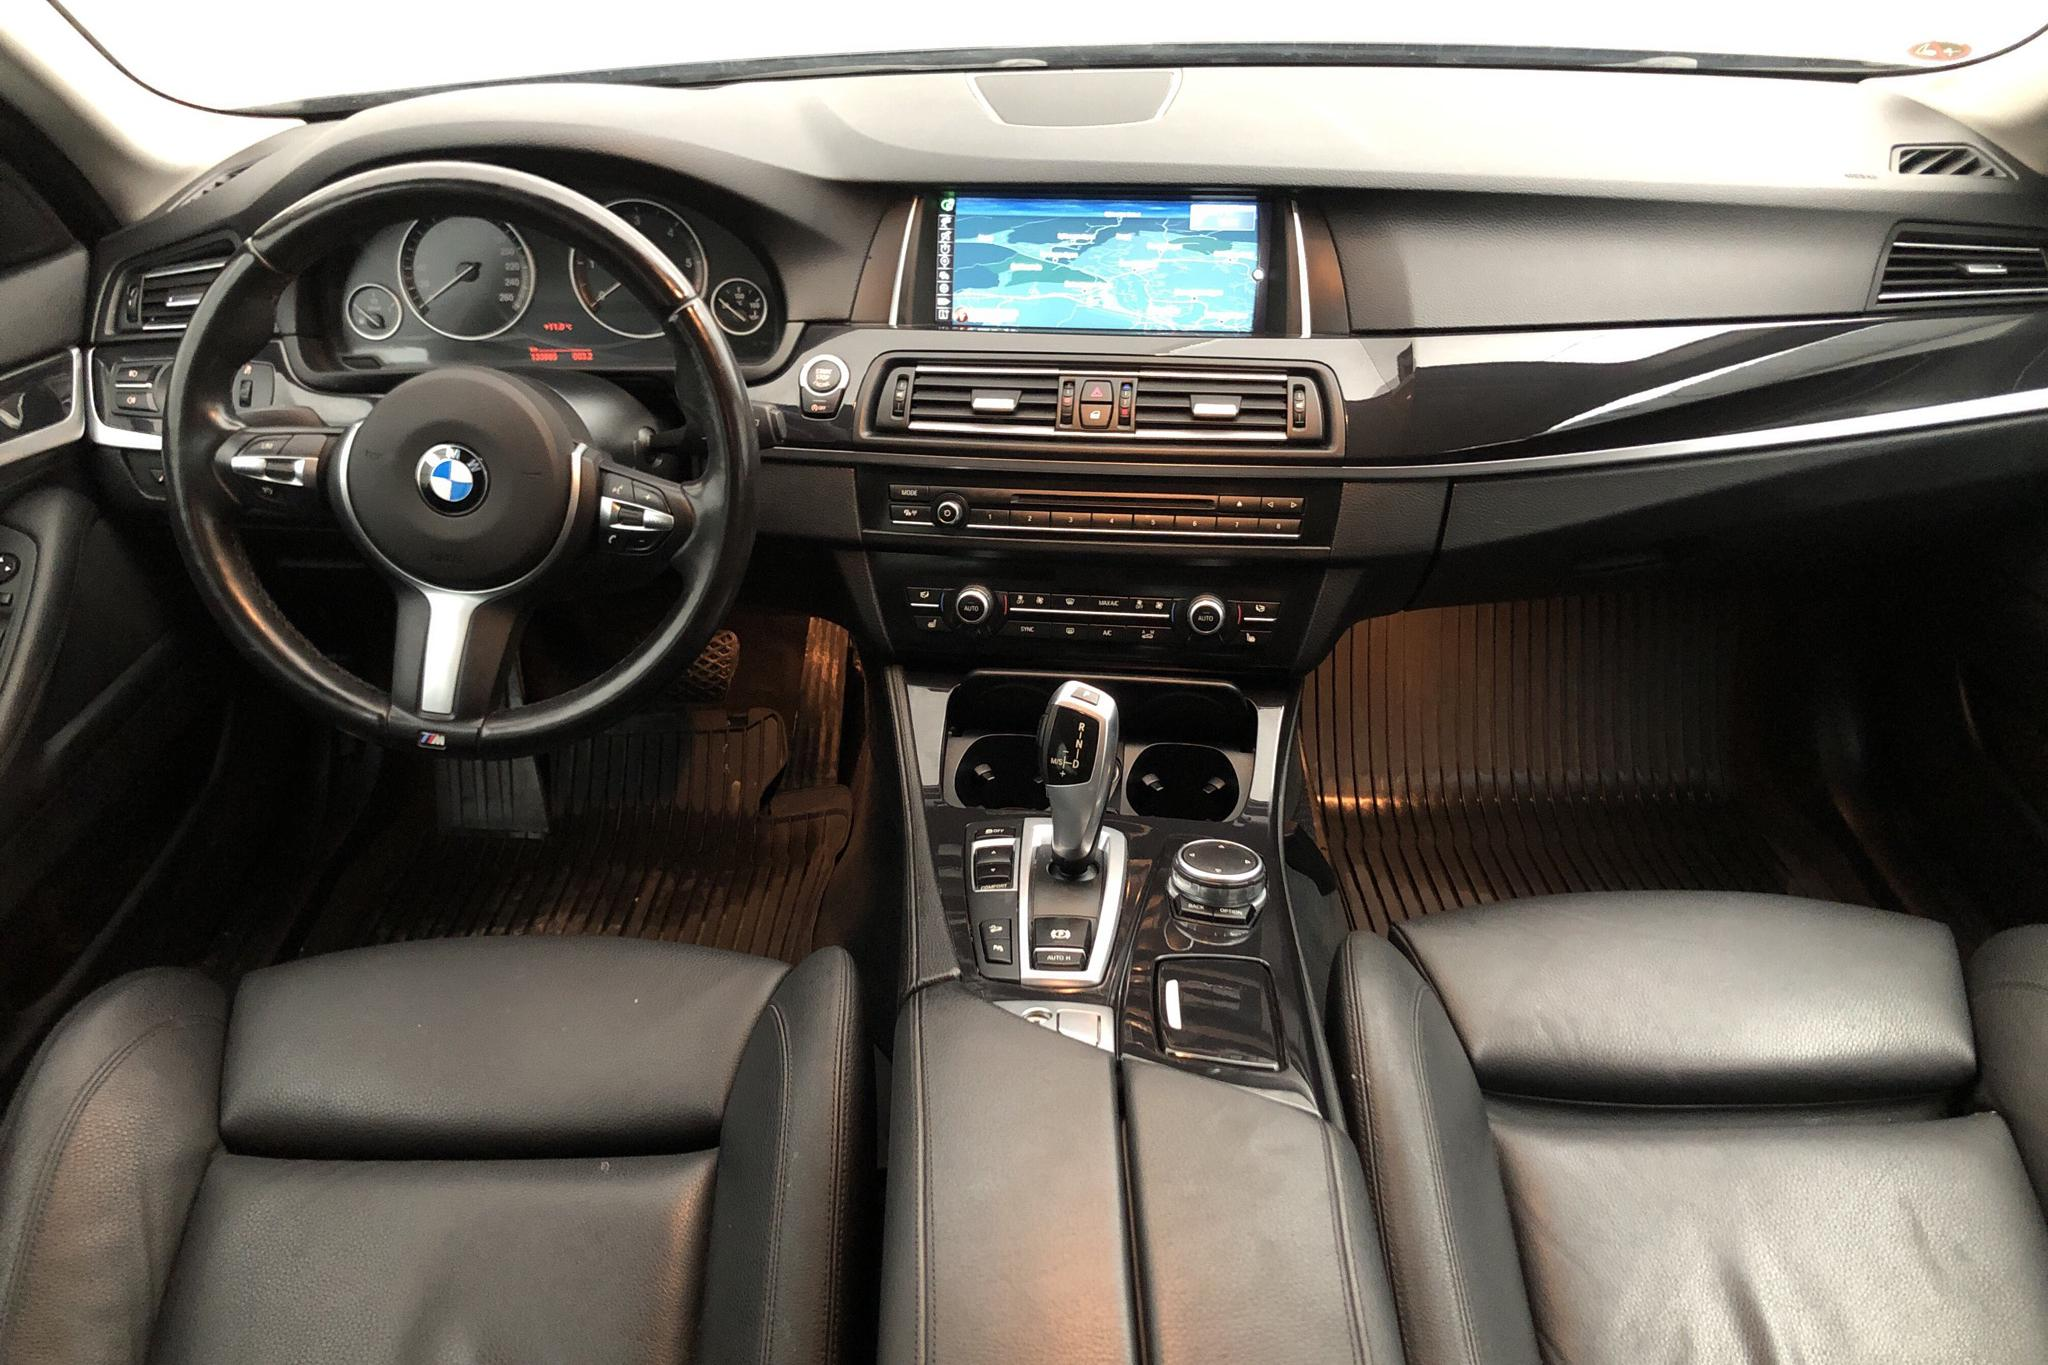 BMW 520d xDrive Touring, F11 (190hk) - 133 880 km - Automatic - black - 2017